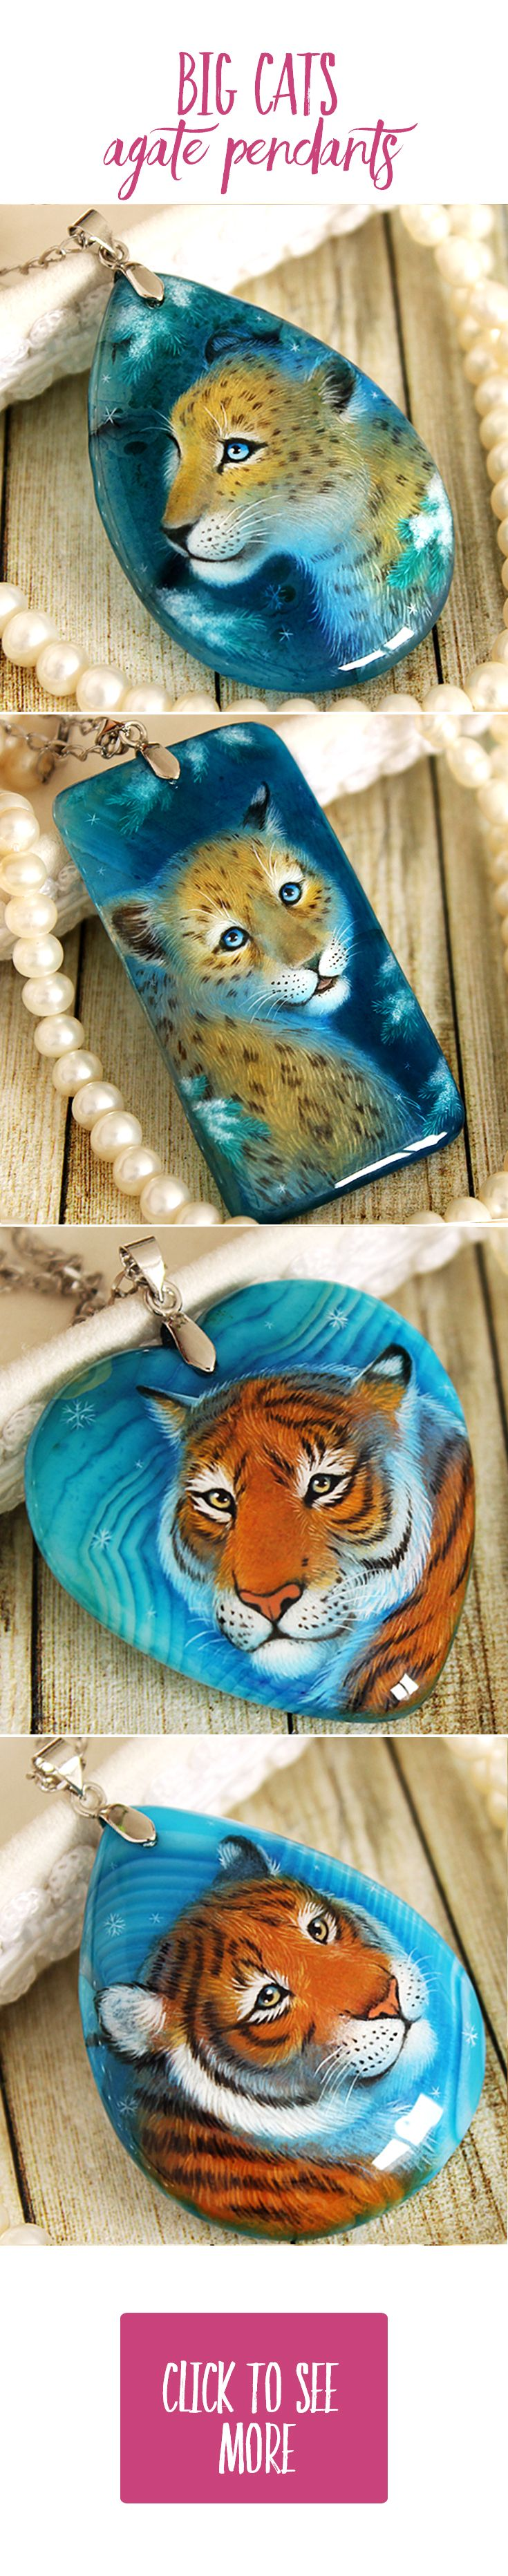 Cute leopard and tiger pendants handmade painted by oil paints agate and cornelian stones  ach pendant is unique, I don't make any copy. You can buy it in my Etsy shop, I make sales each month. Usually items sells very fast, so subscribe me in social media and you always will be informed about all sales and items! My nickname on Facebook, Instagram and Devianart is same - LunarFerns